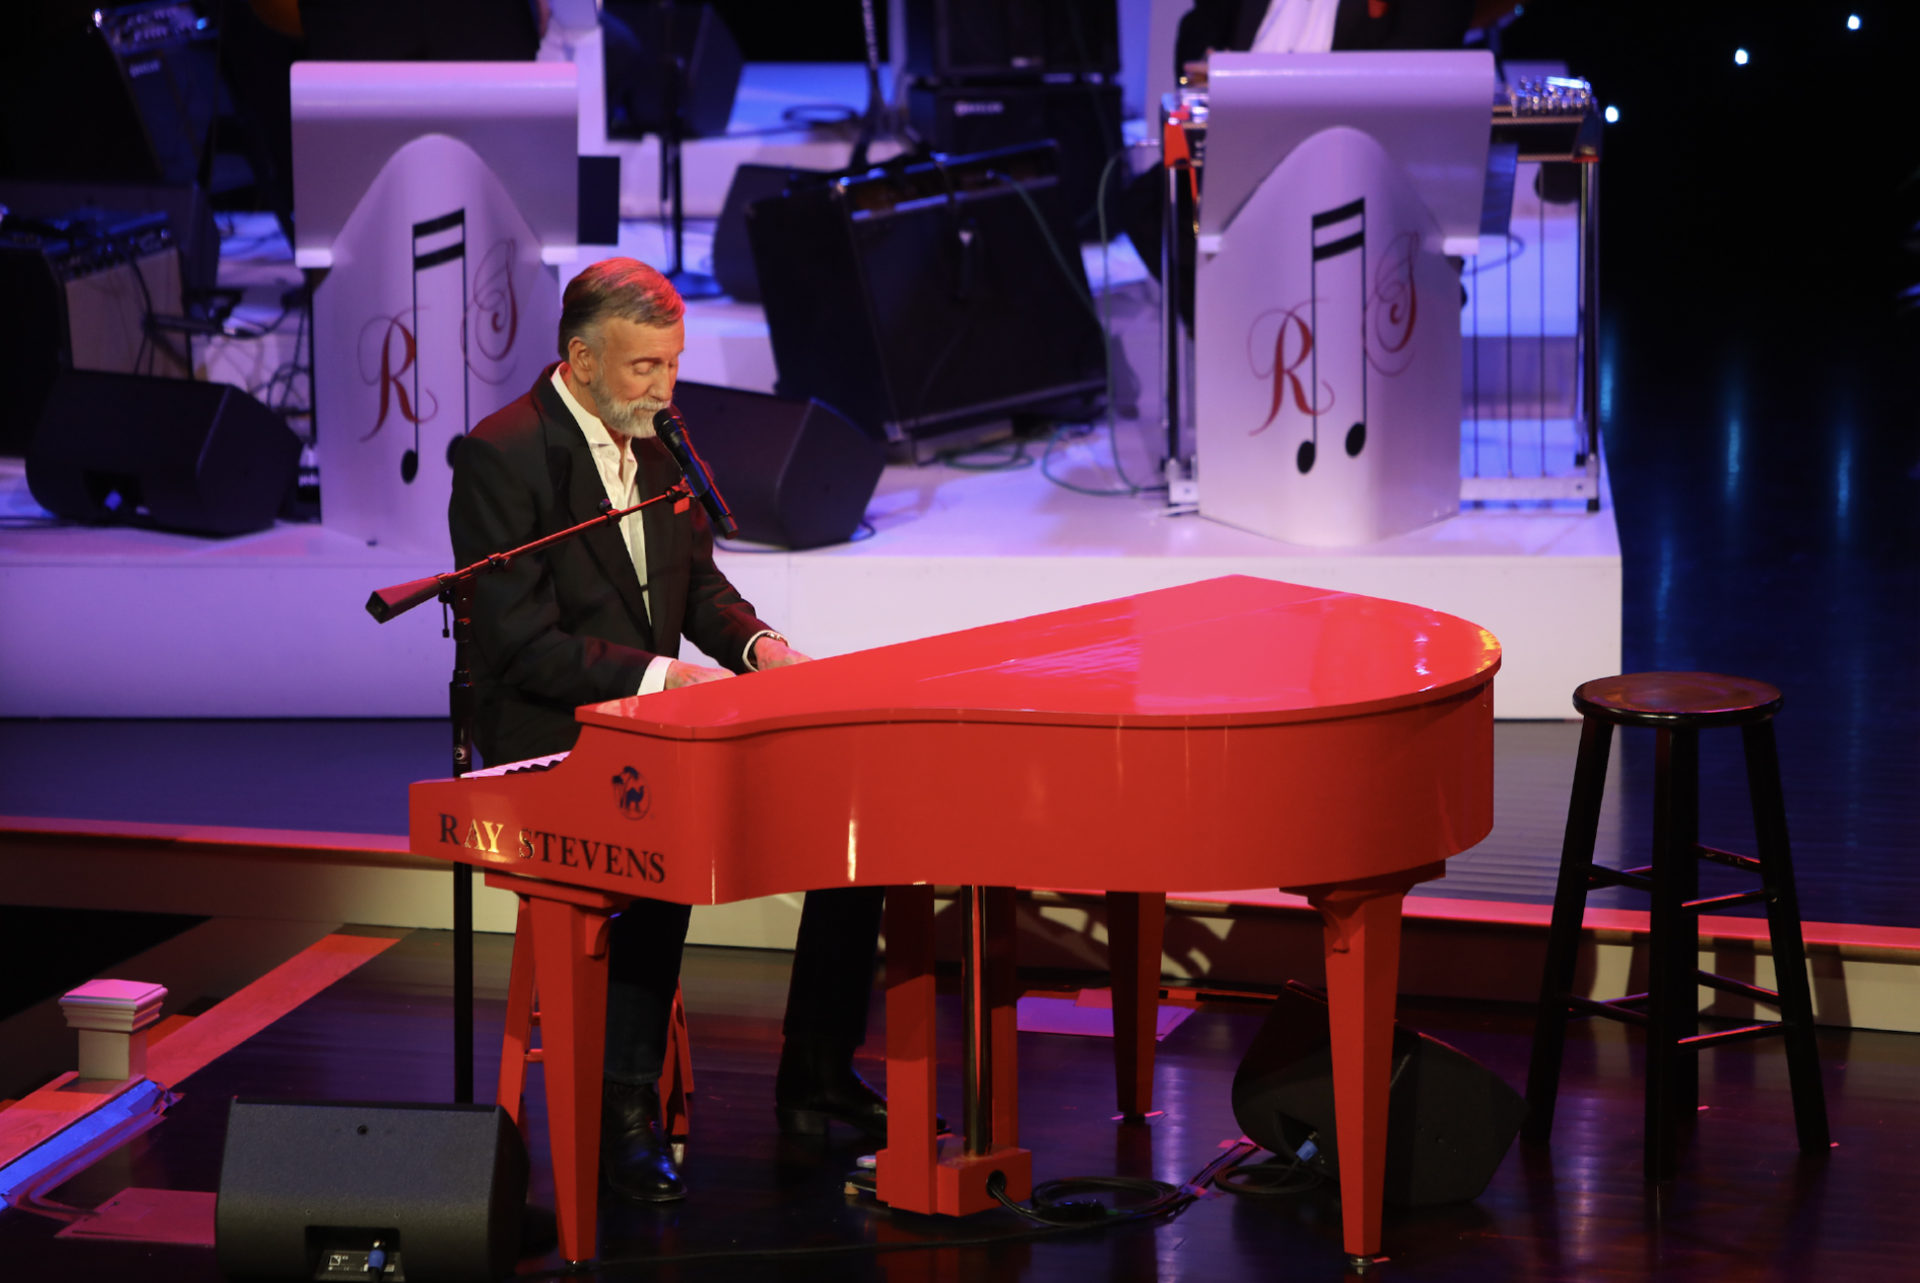 Ray Stevens performing live shows in Nashville, TN. A popular Nashville Attraction and listed top things to do in Nashville.